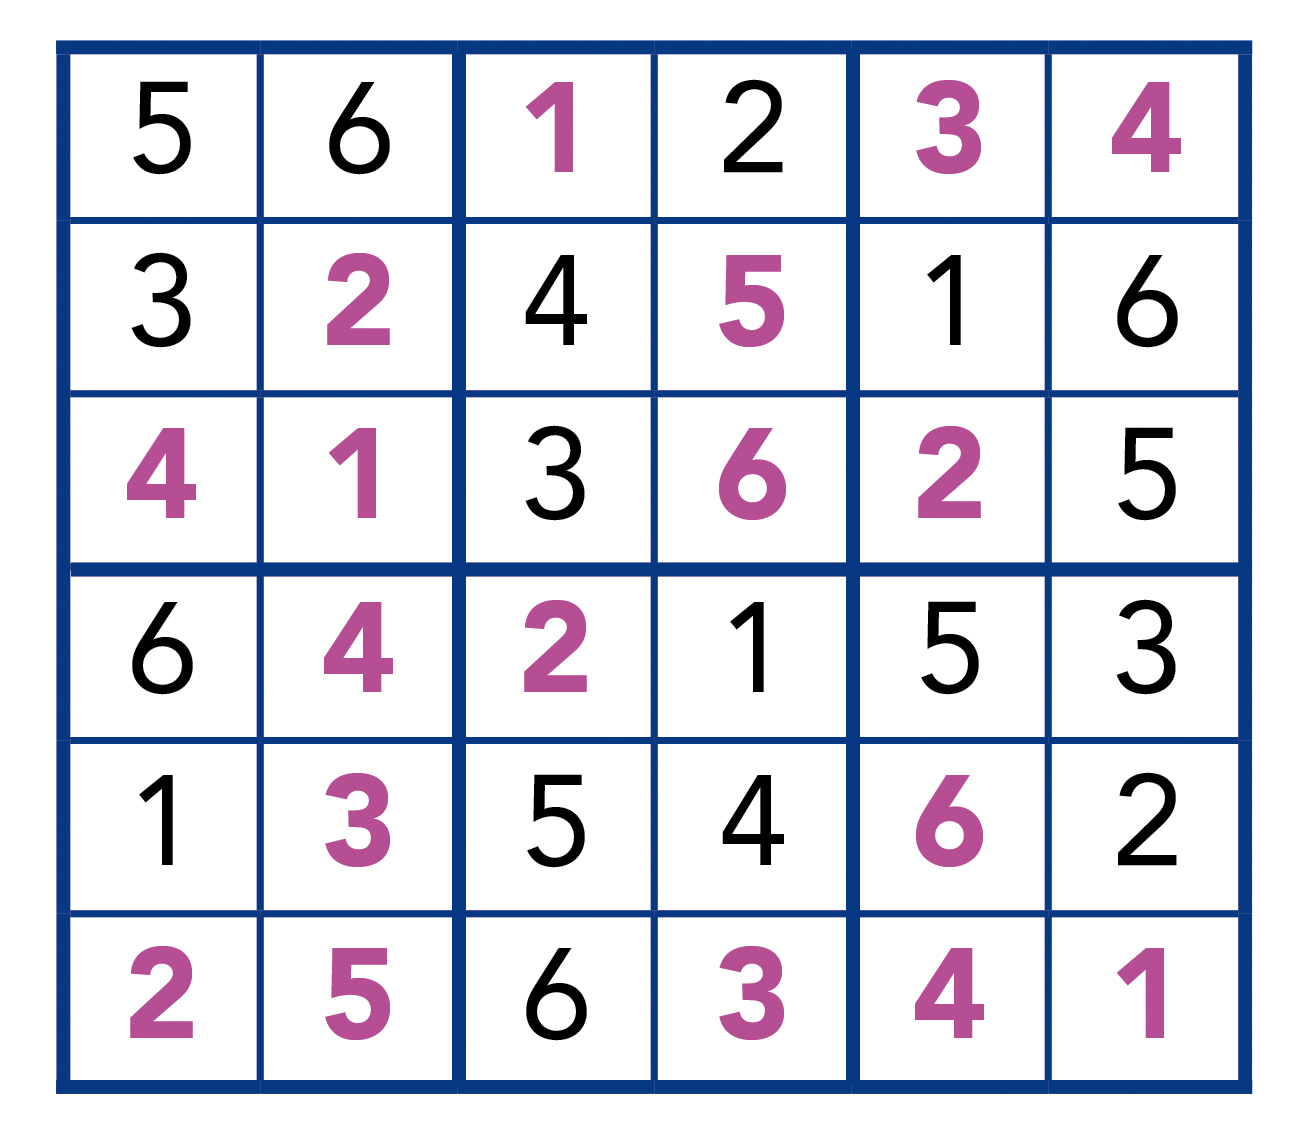 Beste Sudoku Vorlagenwort Fotos - Entry Level Resume Vorlagen ...